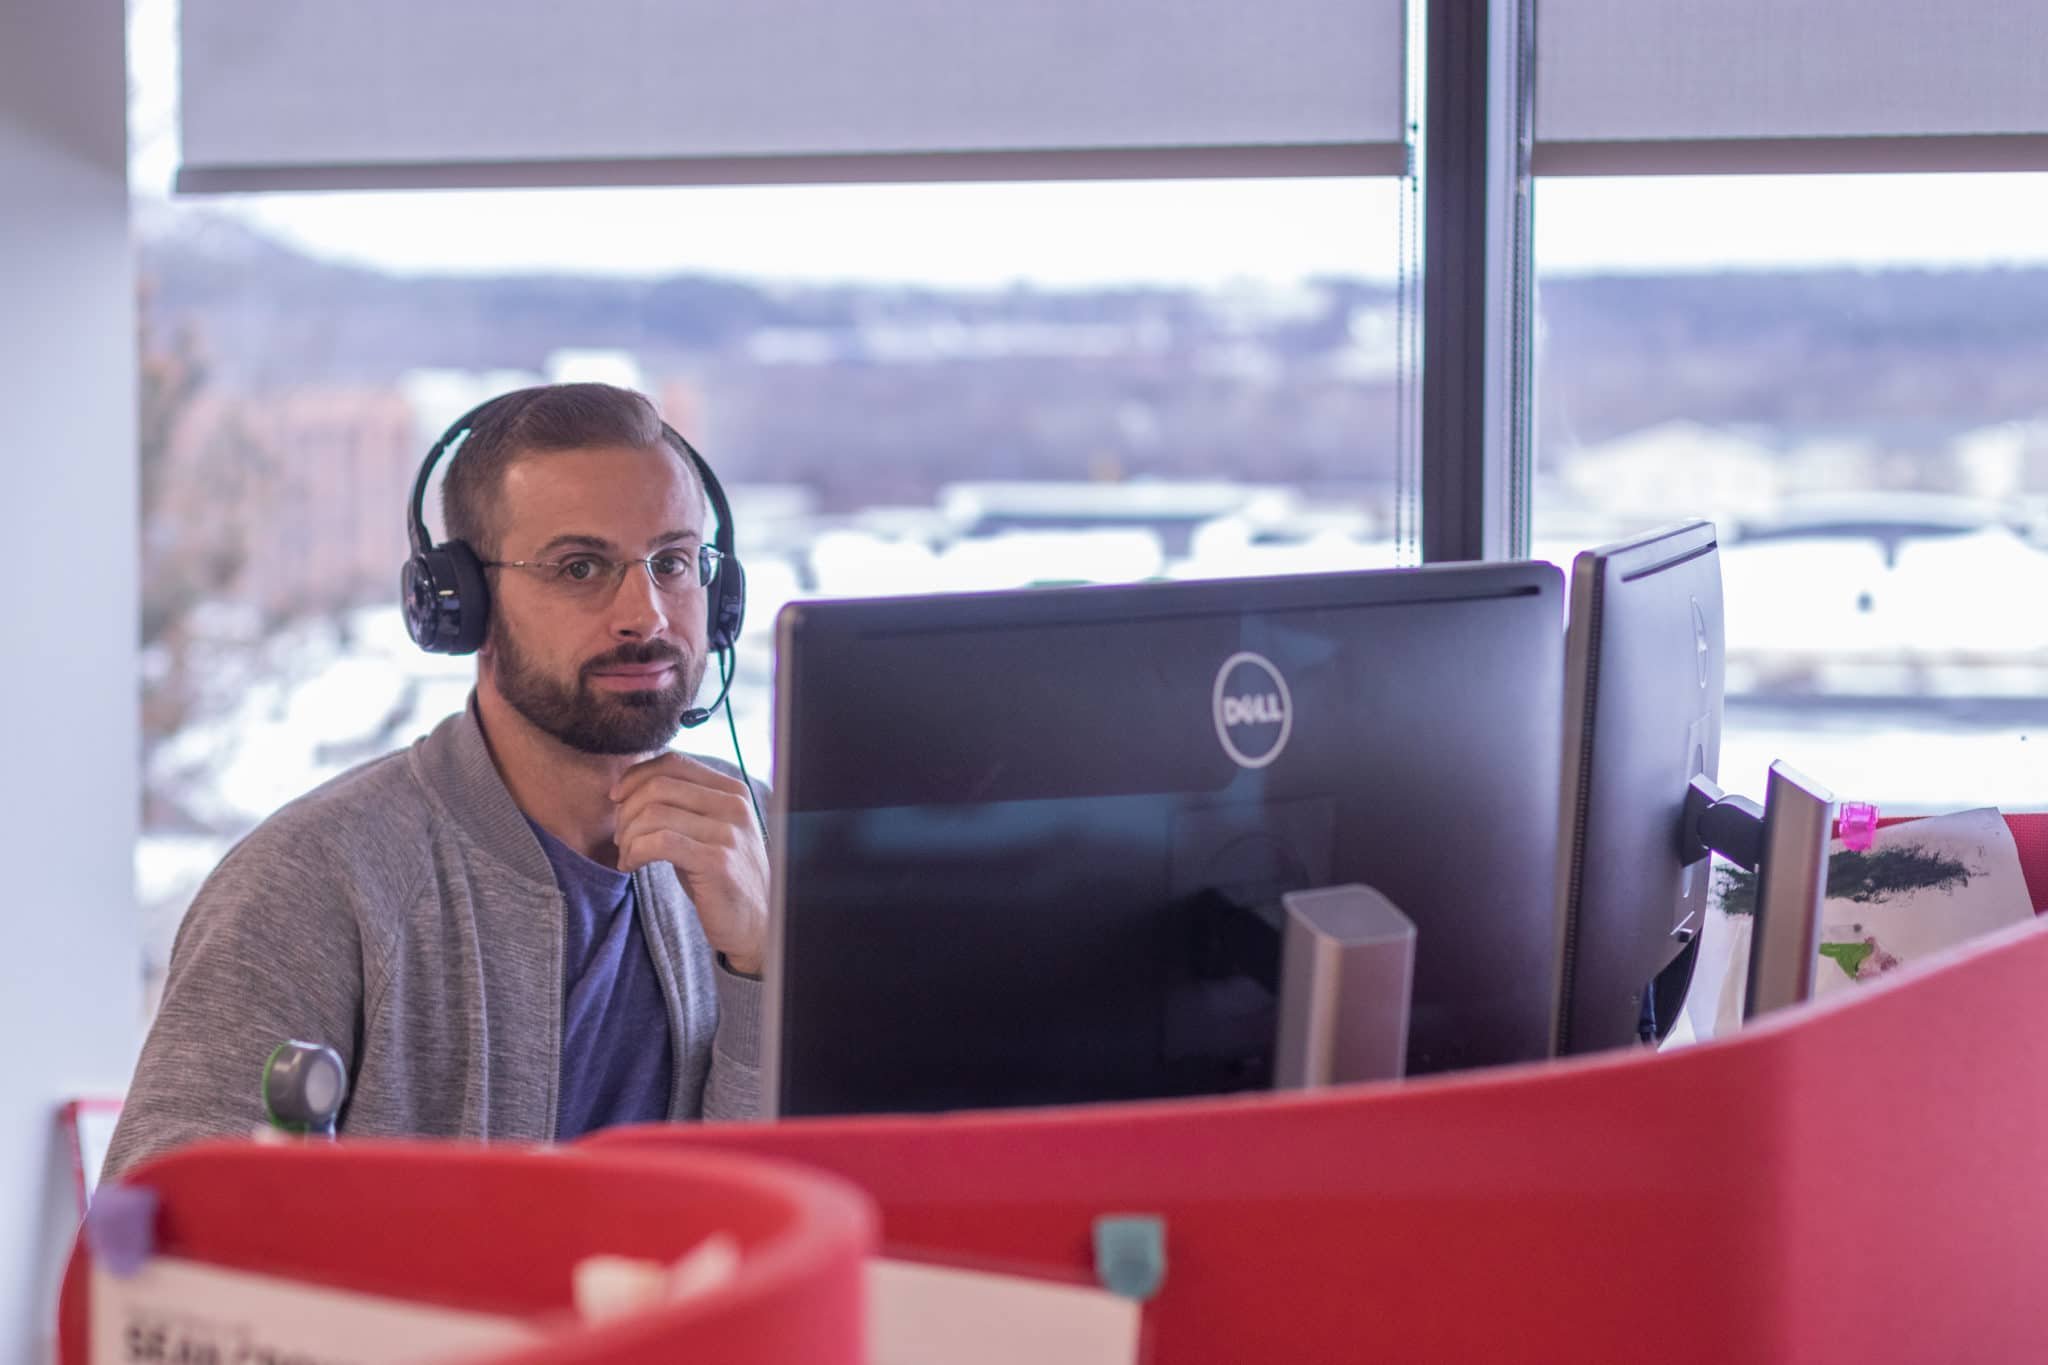 sales person sitting at desk